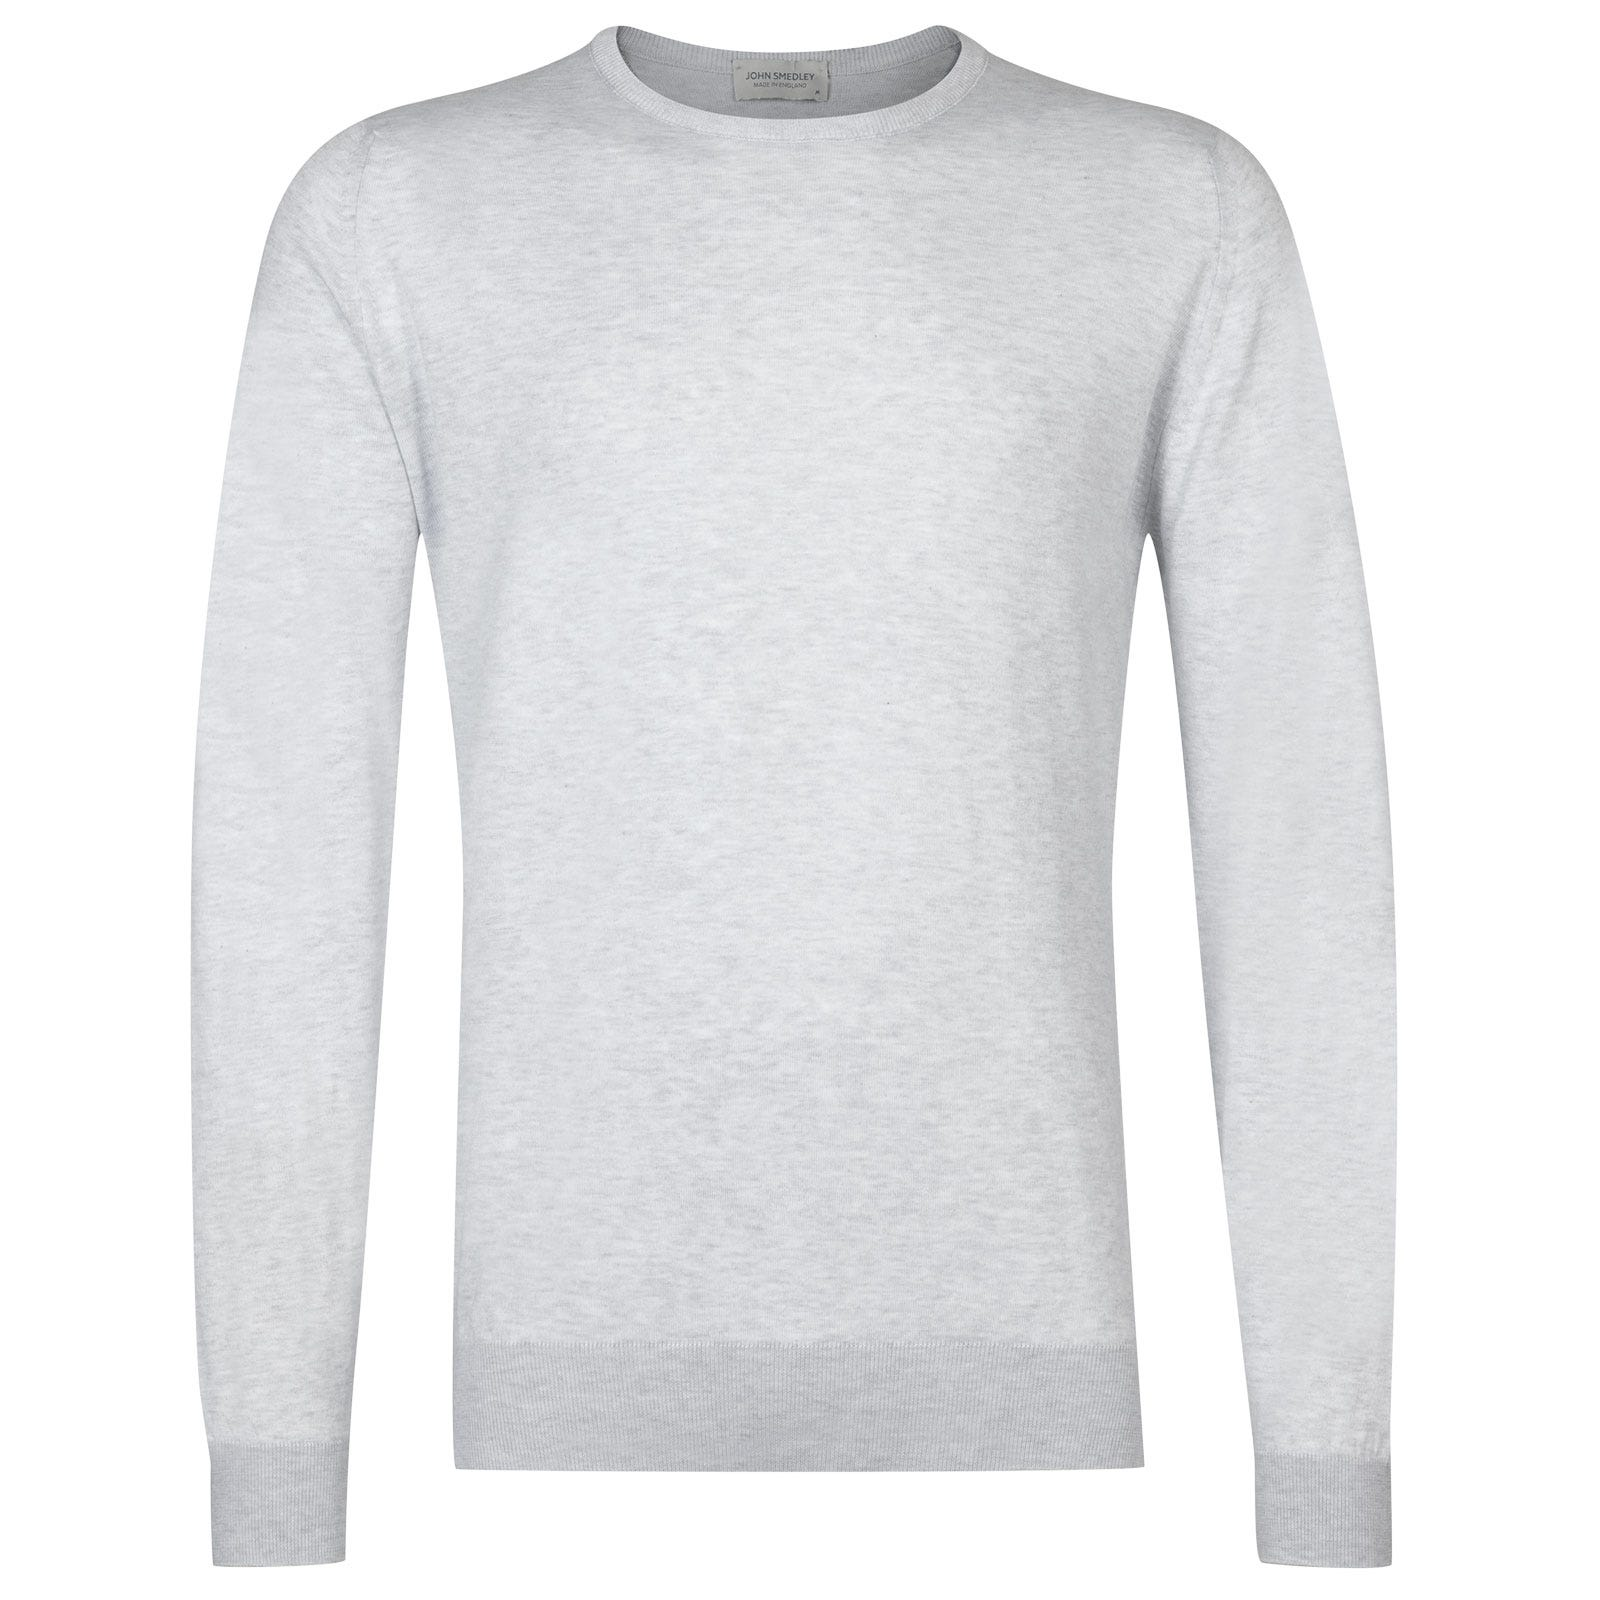 John Smedley hatfield Sea Island Cotton Pullover in Feather Grey-XXL